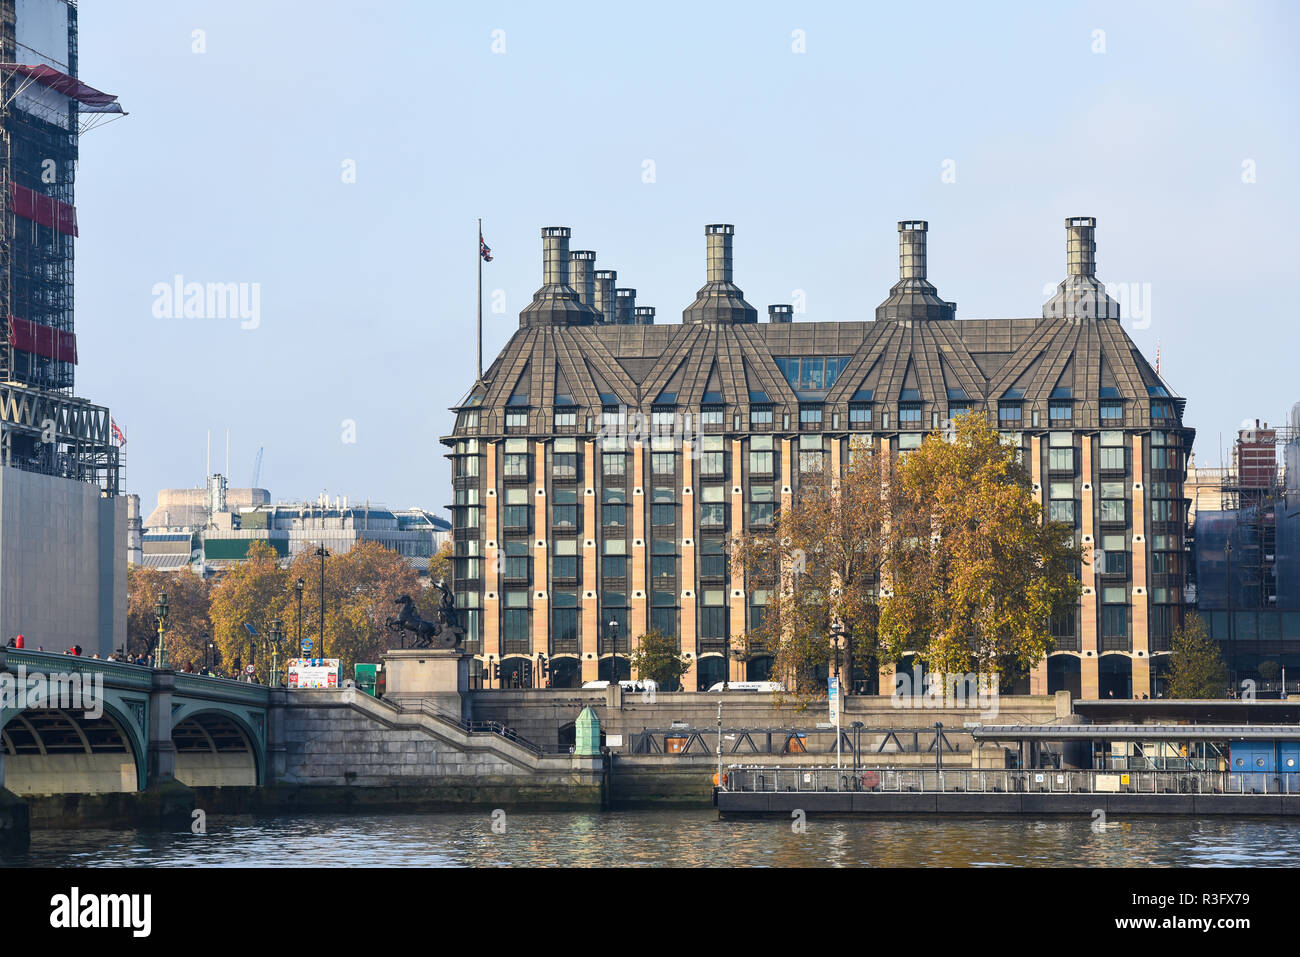 Portcullis House (PCH) is an office building in Westminster, London, UK, opened in 2001 to provide offices for 213 members of Parliament. Embankment - Stock Image